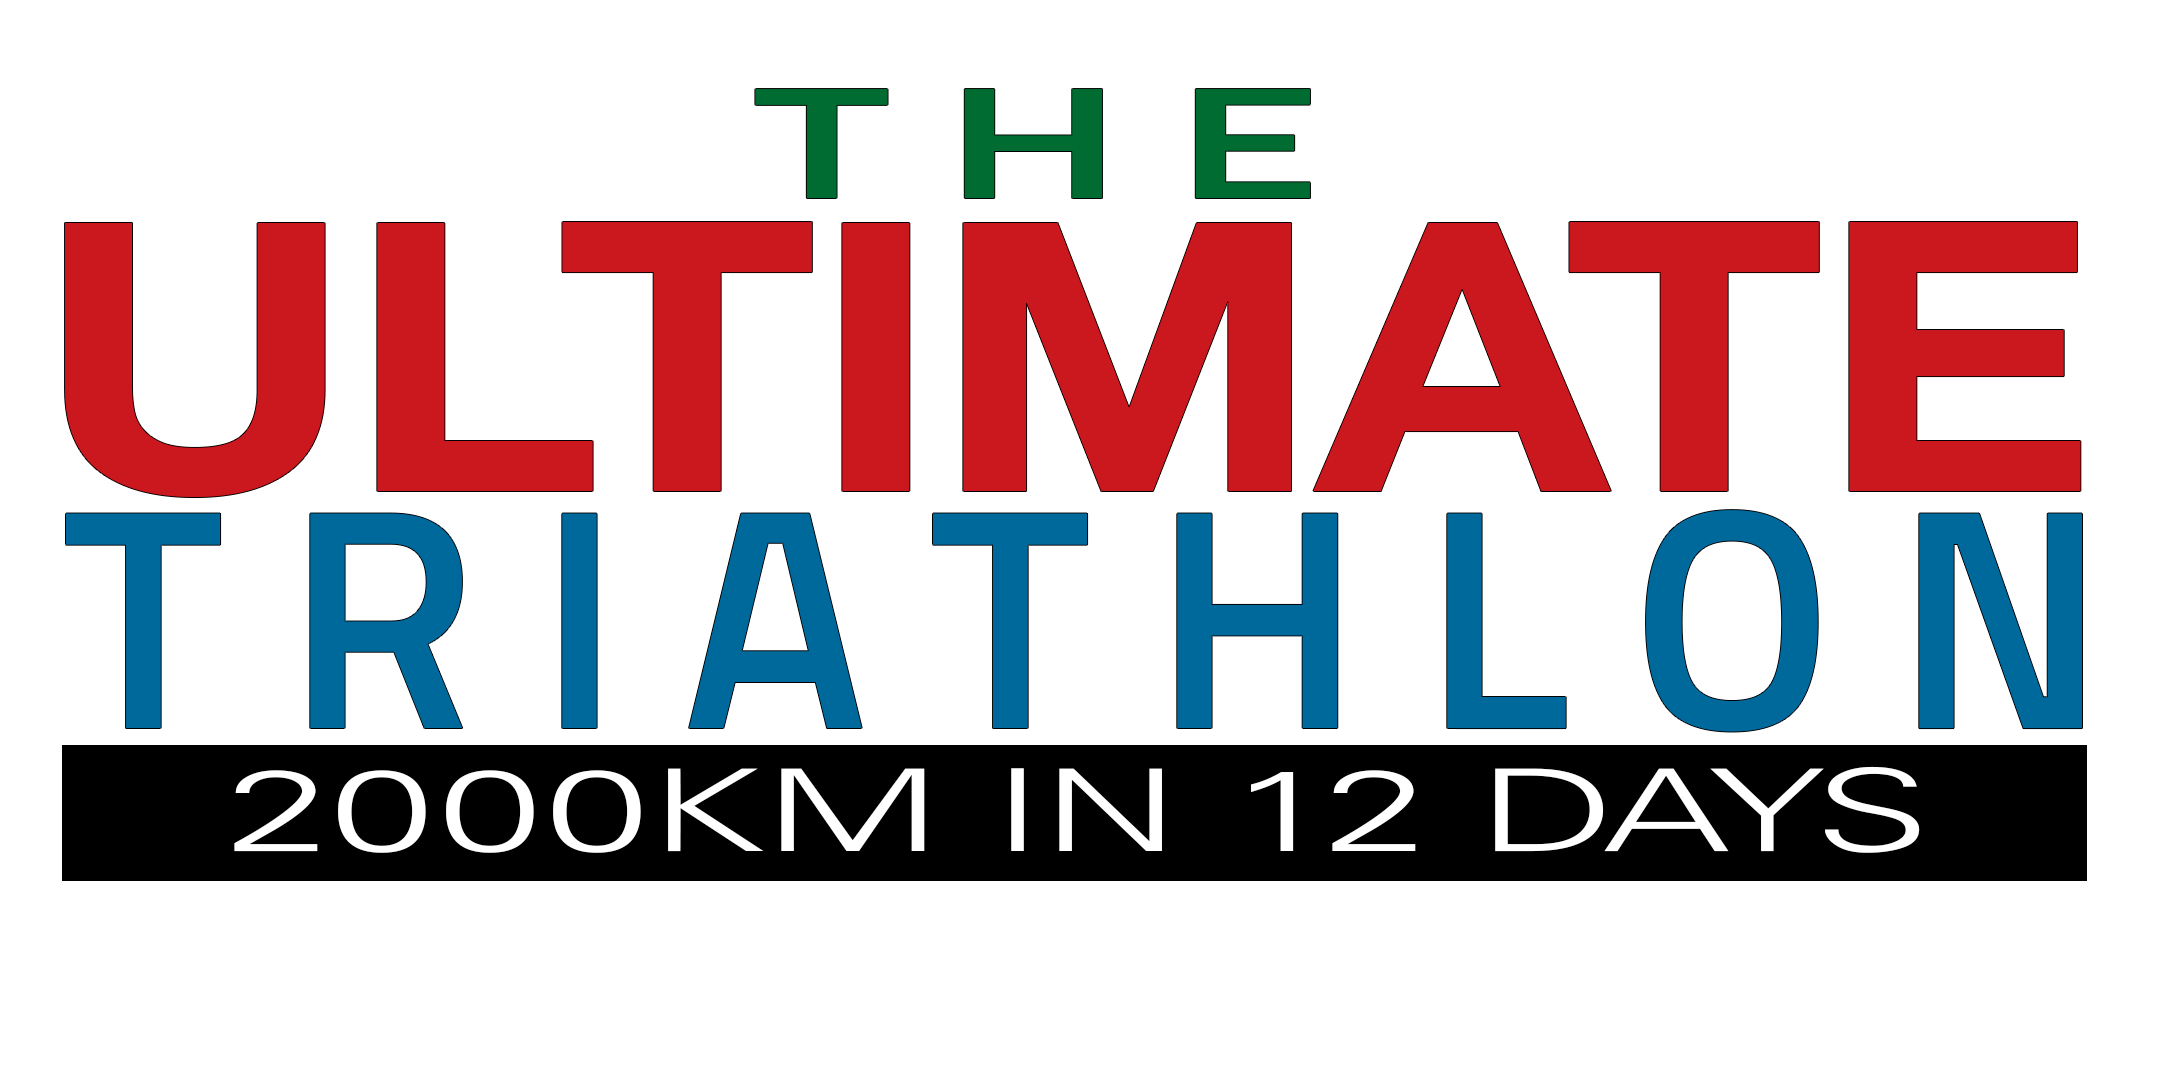 The Ultimate Triathlon - 2000kms in 12 days